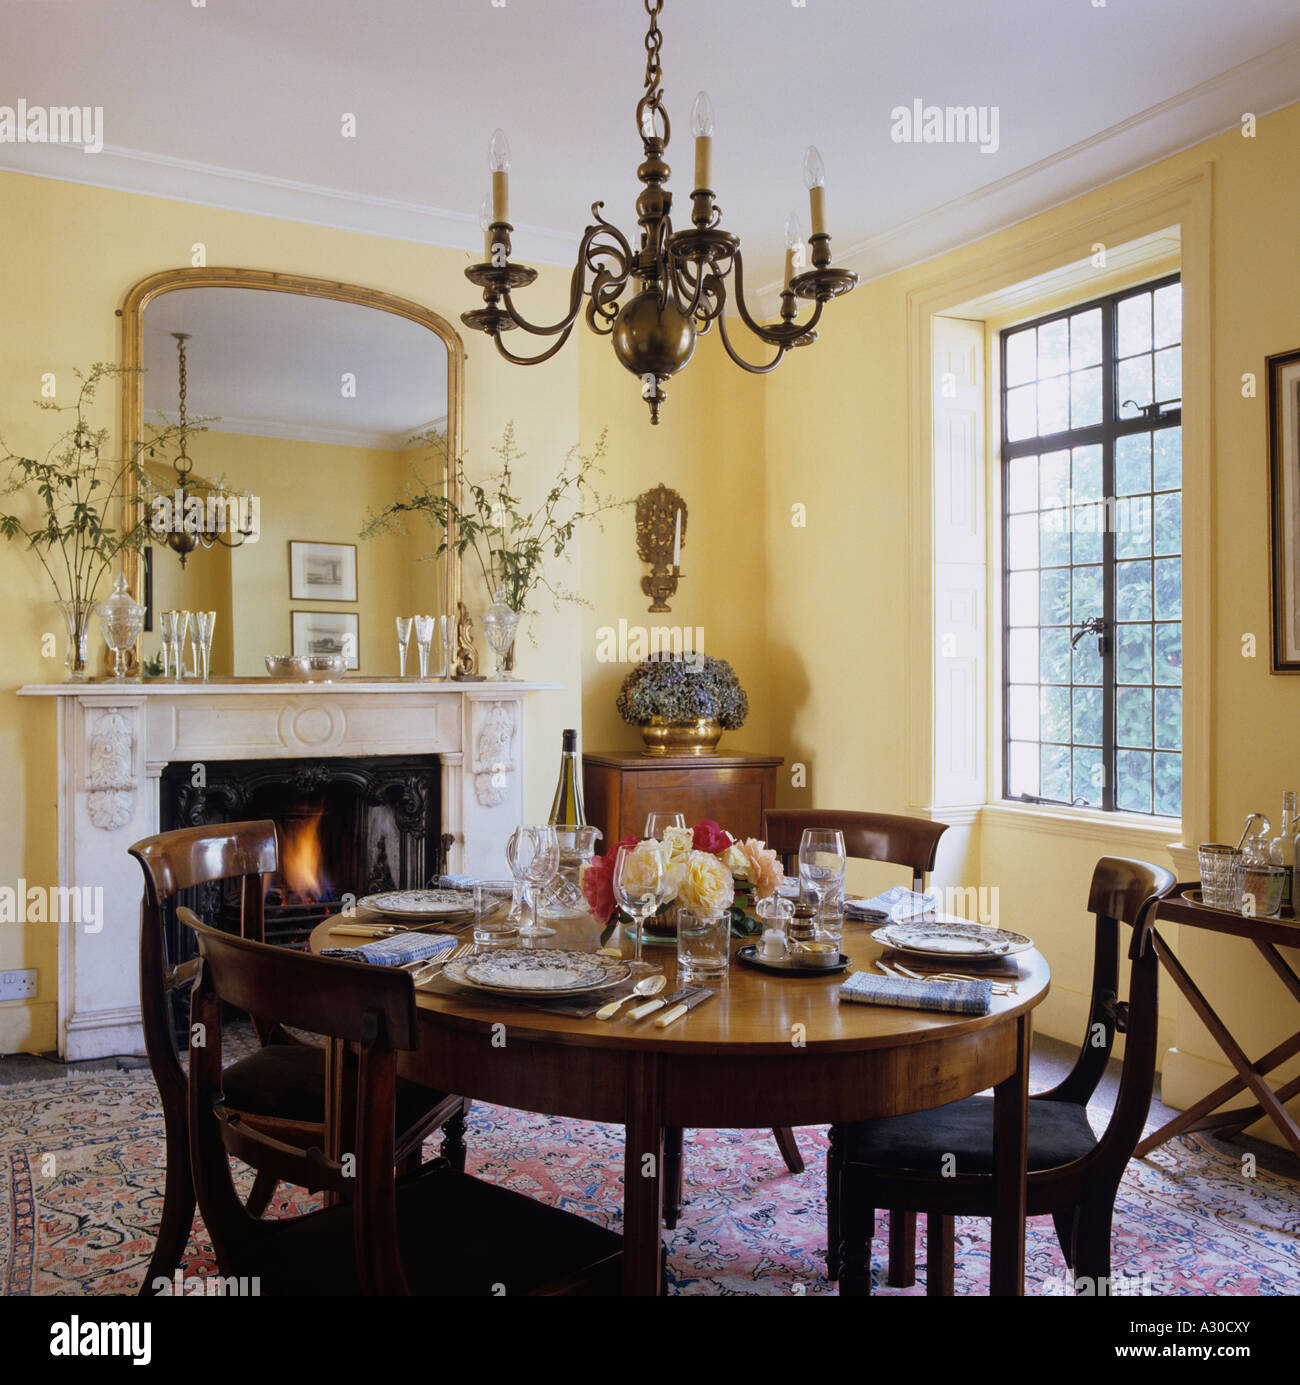 Country Style Dining Room: Dining Room In English Townhouse With Country Style